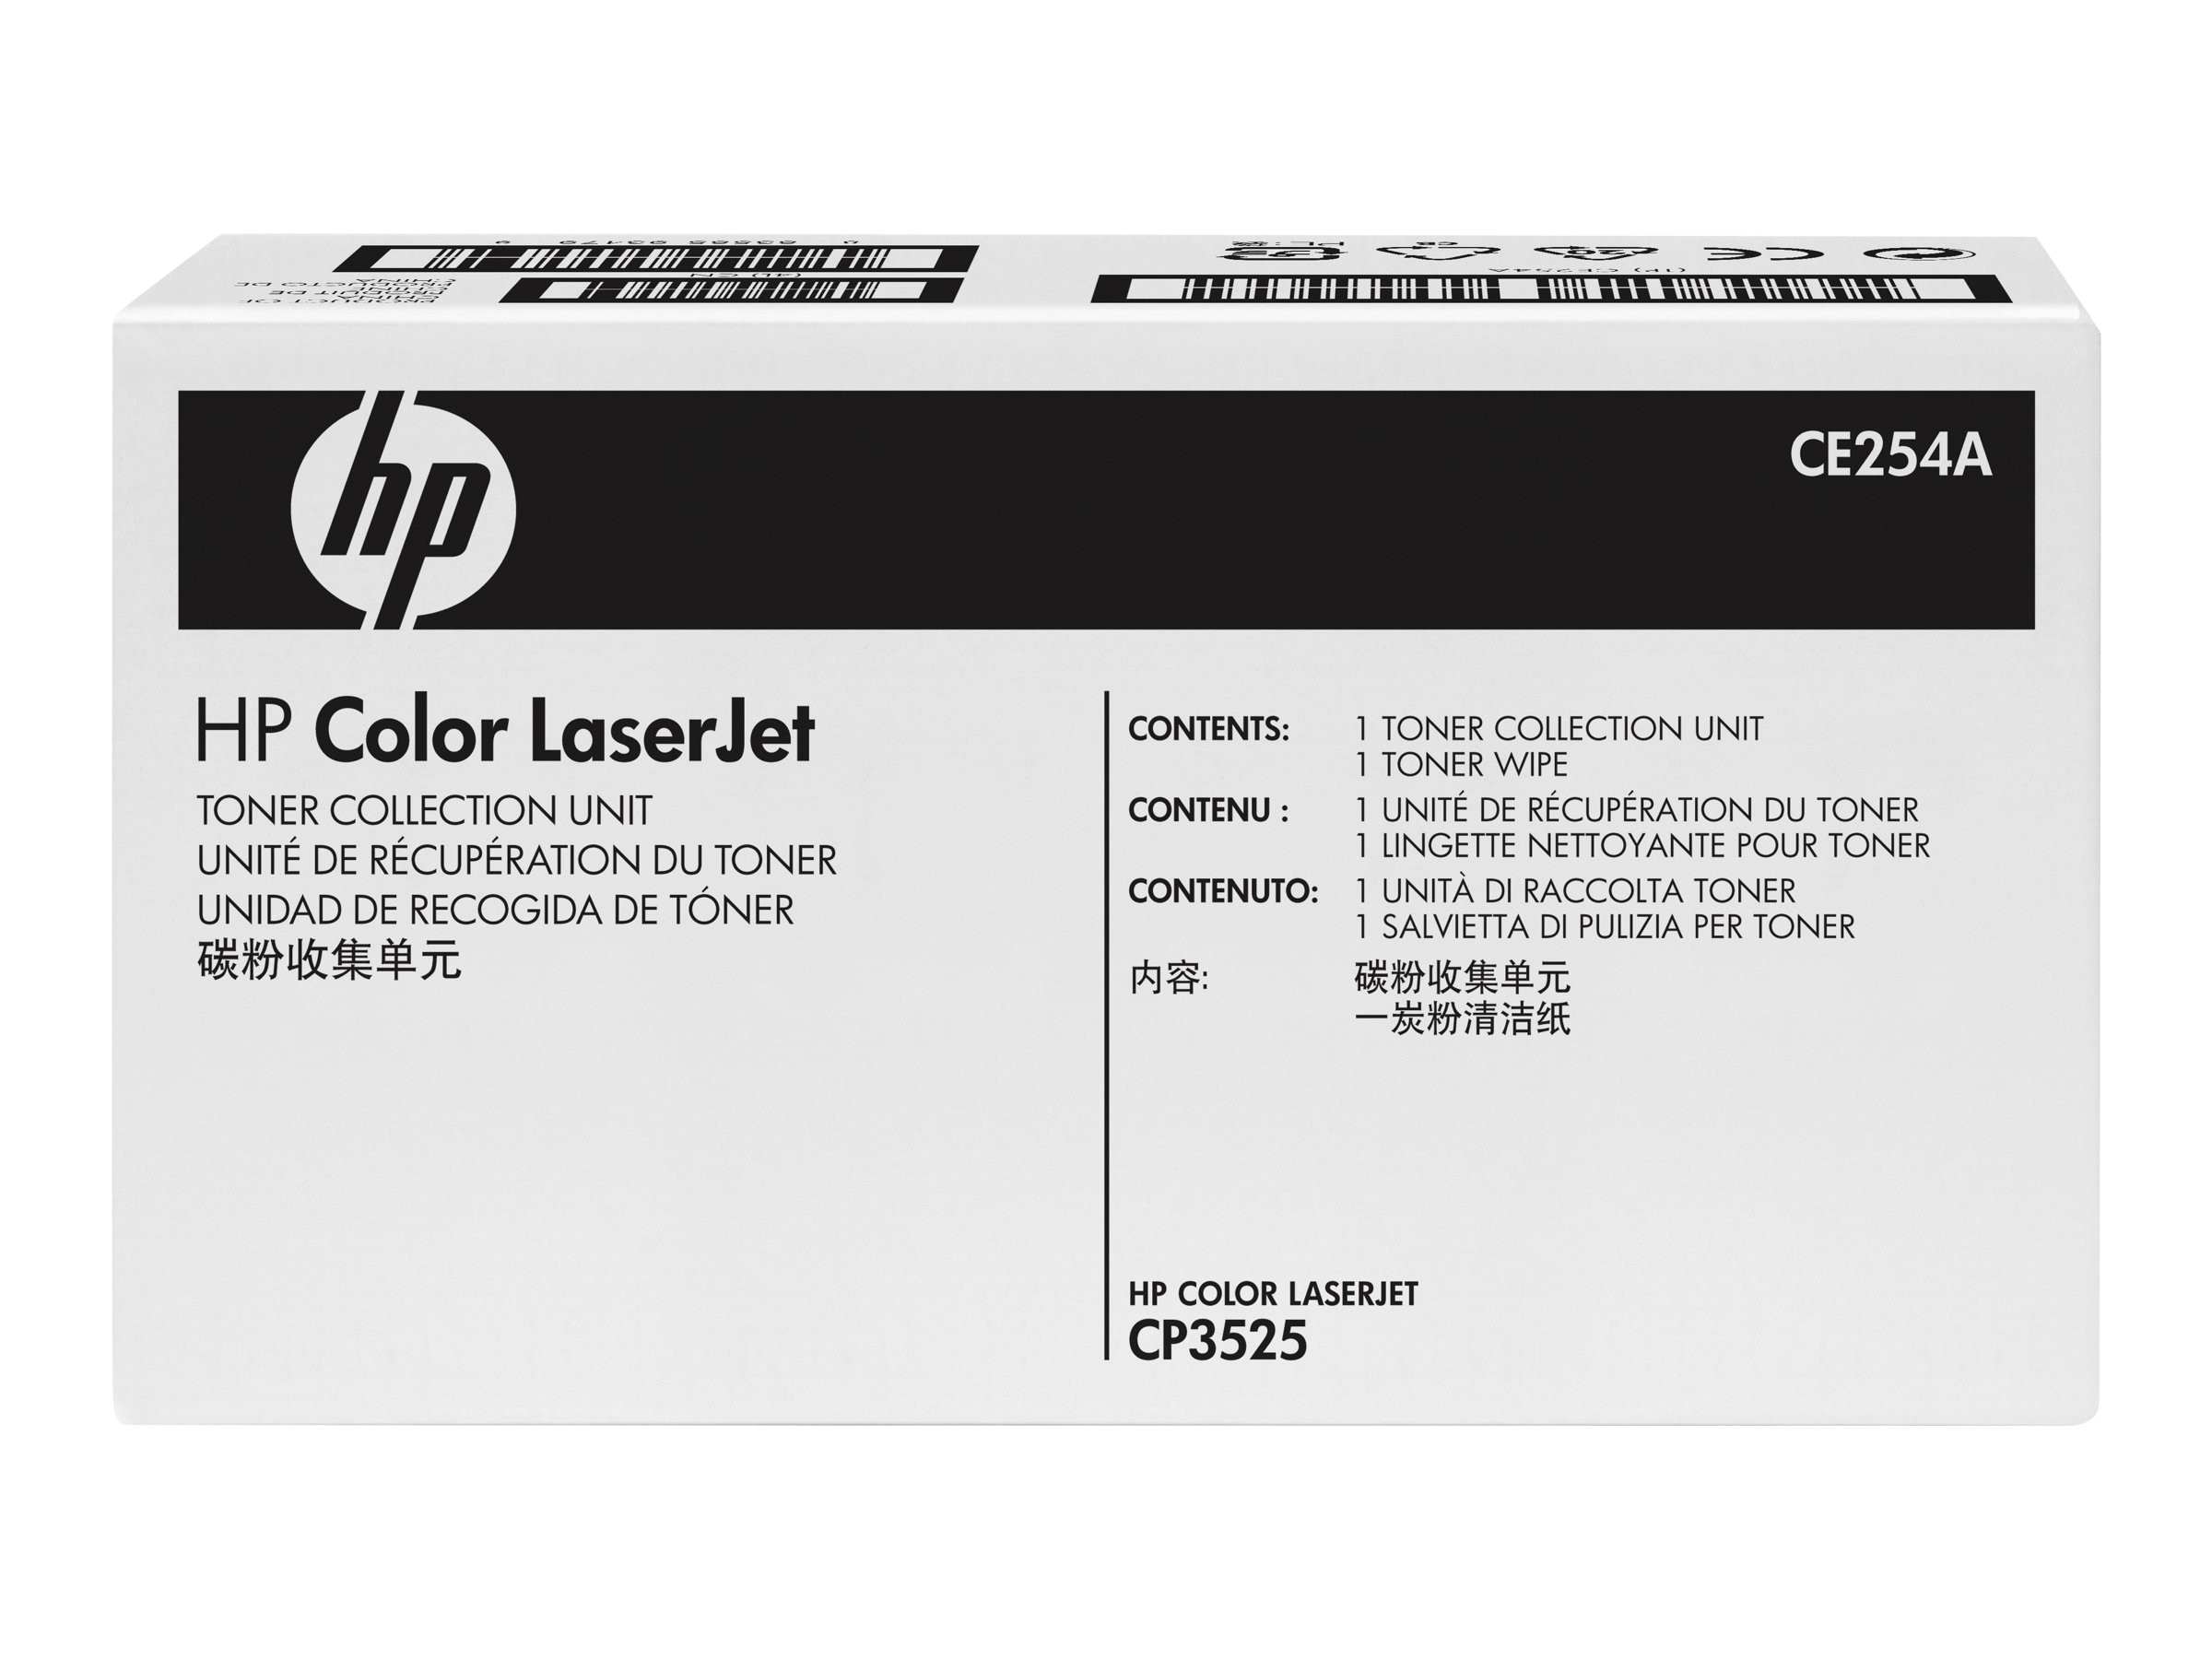 HP Color LaserJet Toner Collection Unit for HP Color LaserJet CP3525 & CM3530 Series